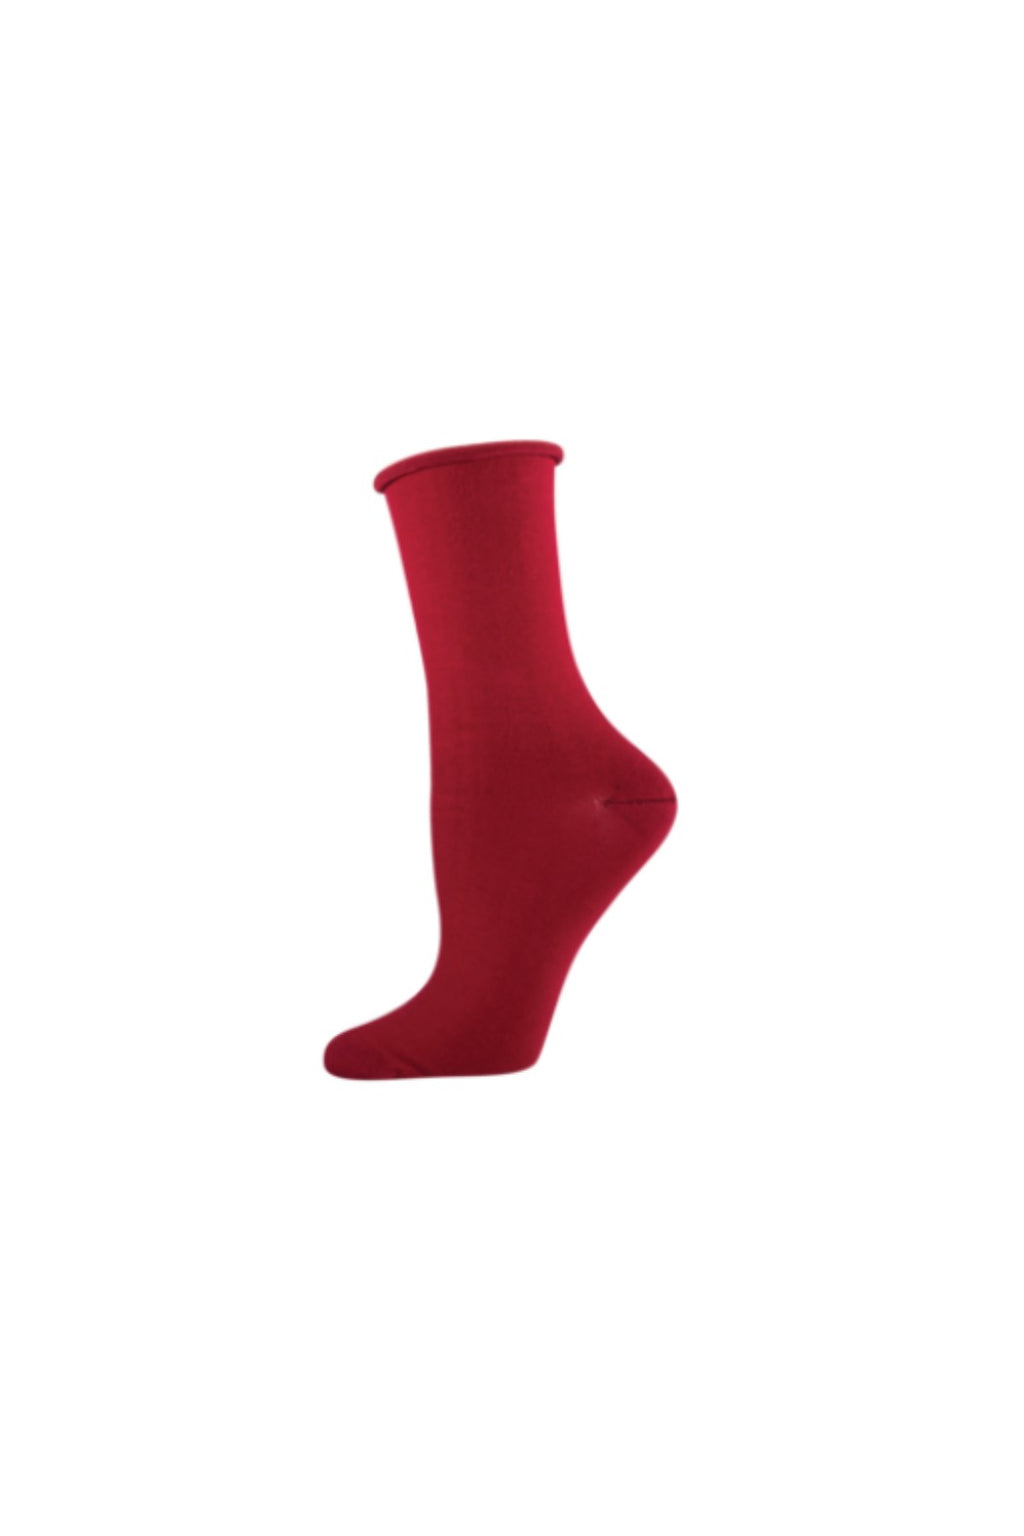 Socksmith Bamboo Crew Socks in Crimson